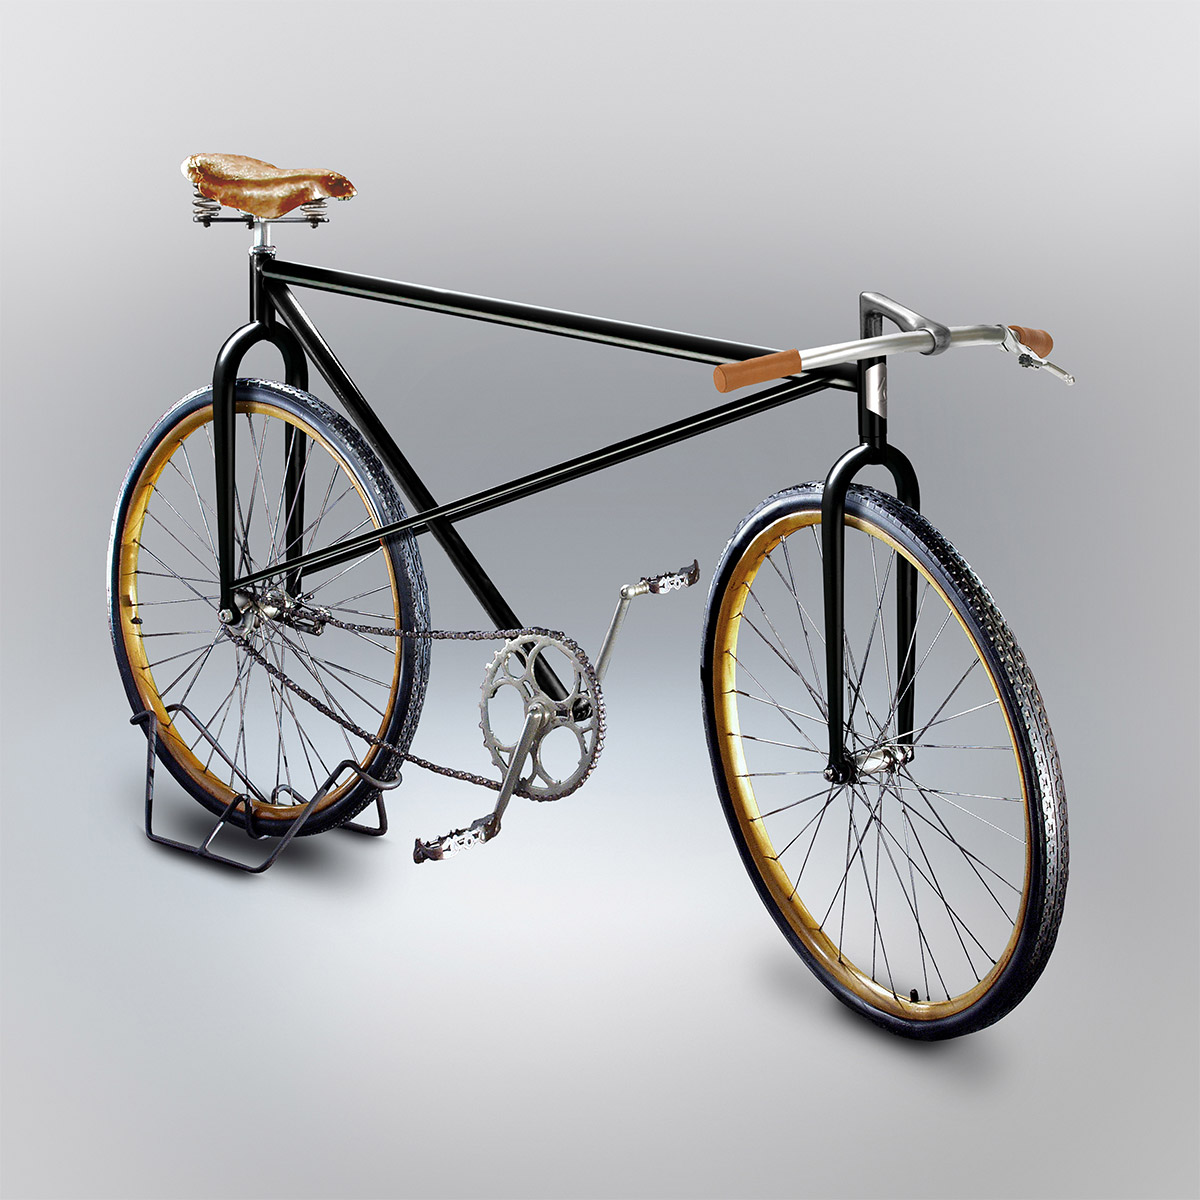 1200x1200 Bicycles Built Based On People's Attempts To Draw Them From Memory